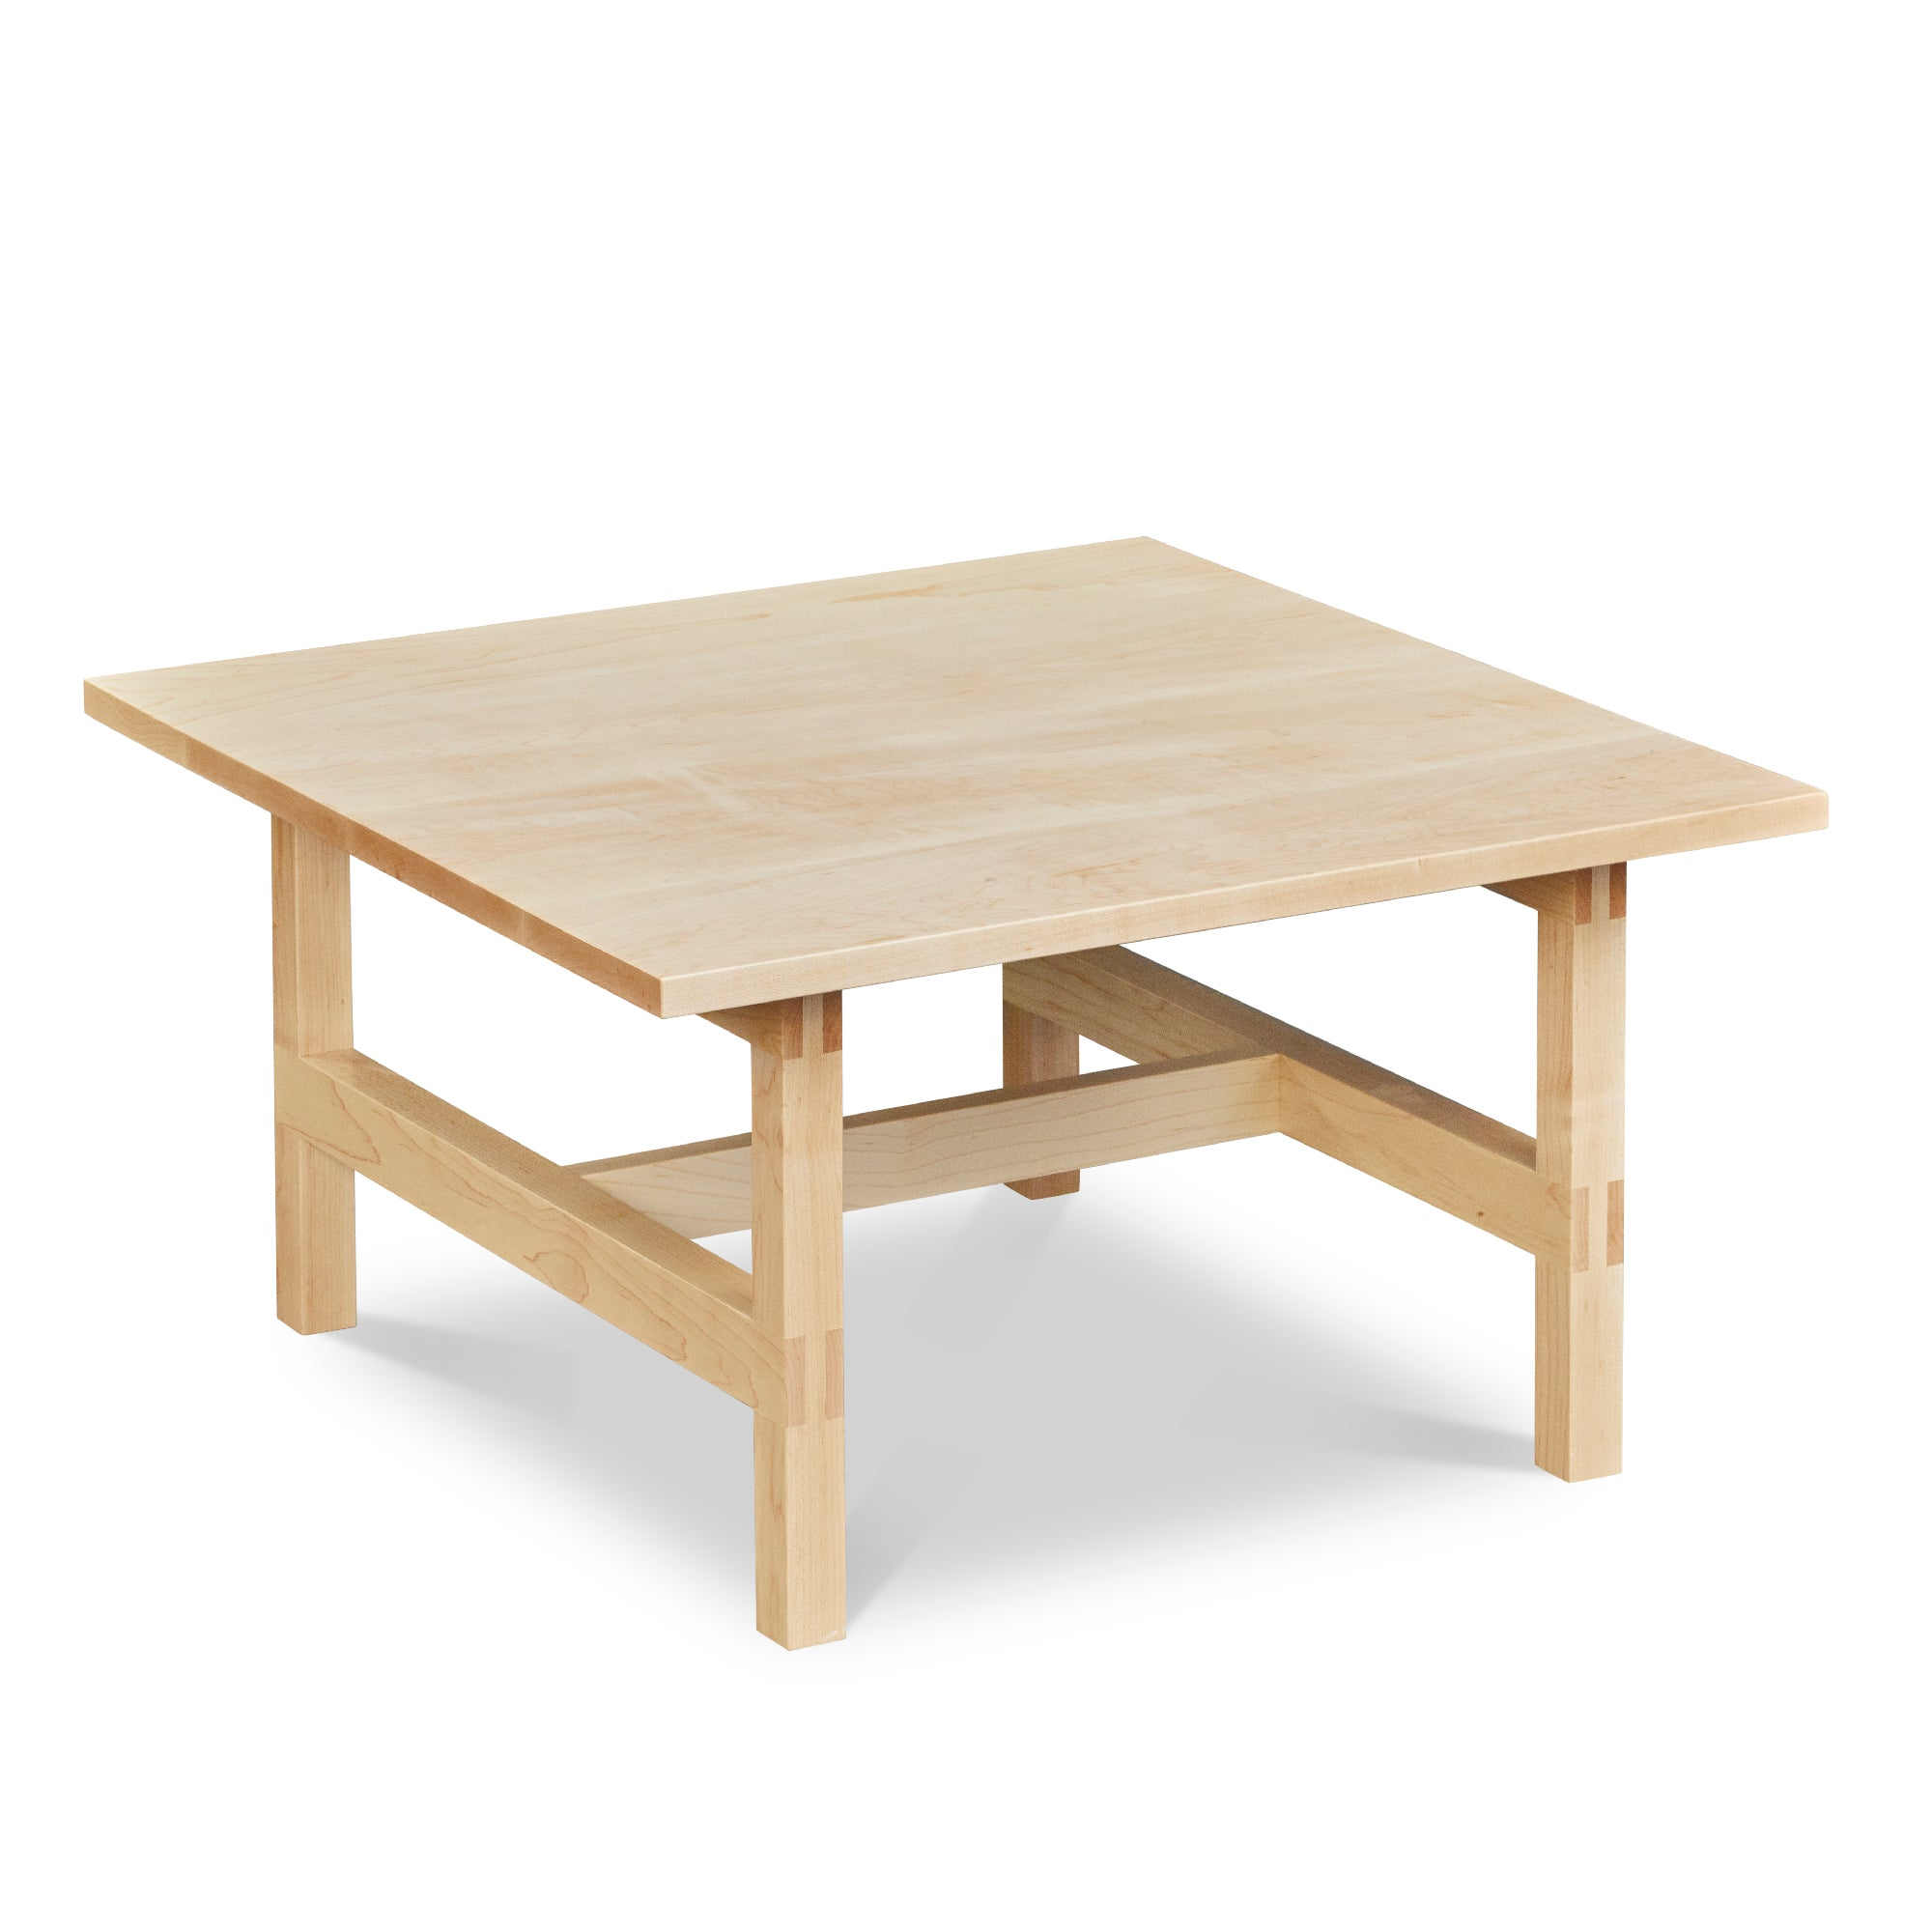 Modern square trestle-style coffee table with visible joinery in maple, from Maine's Chilton Furniture Co.